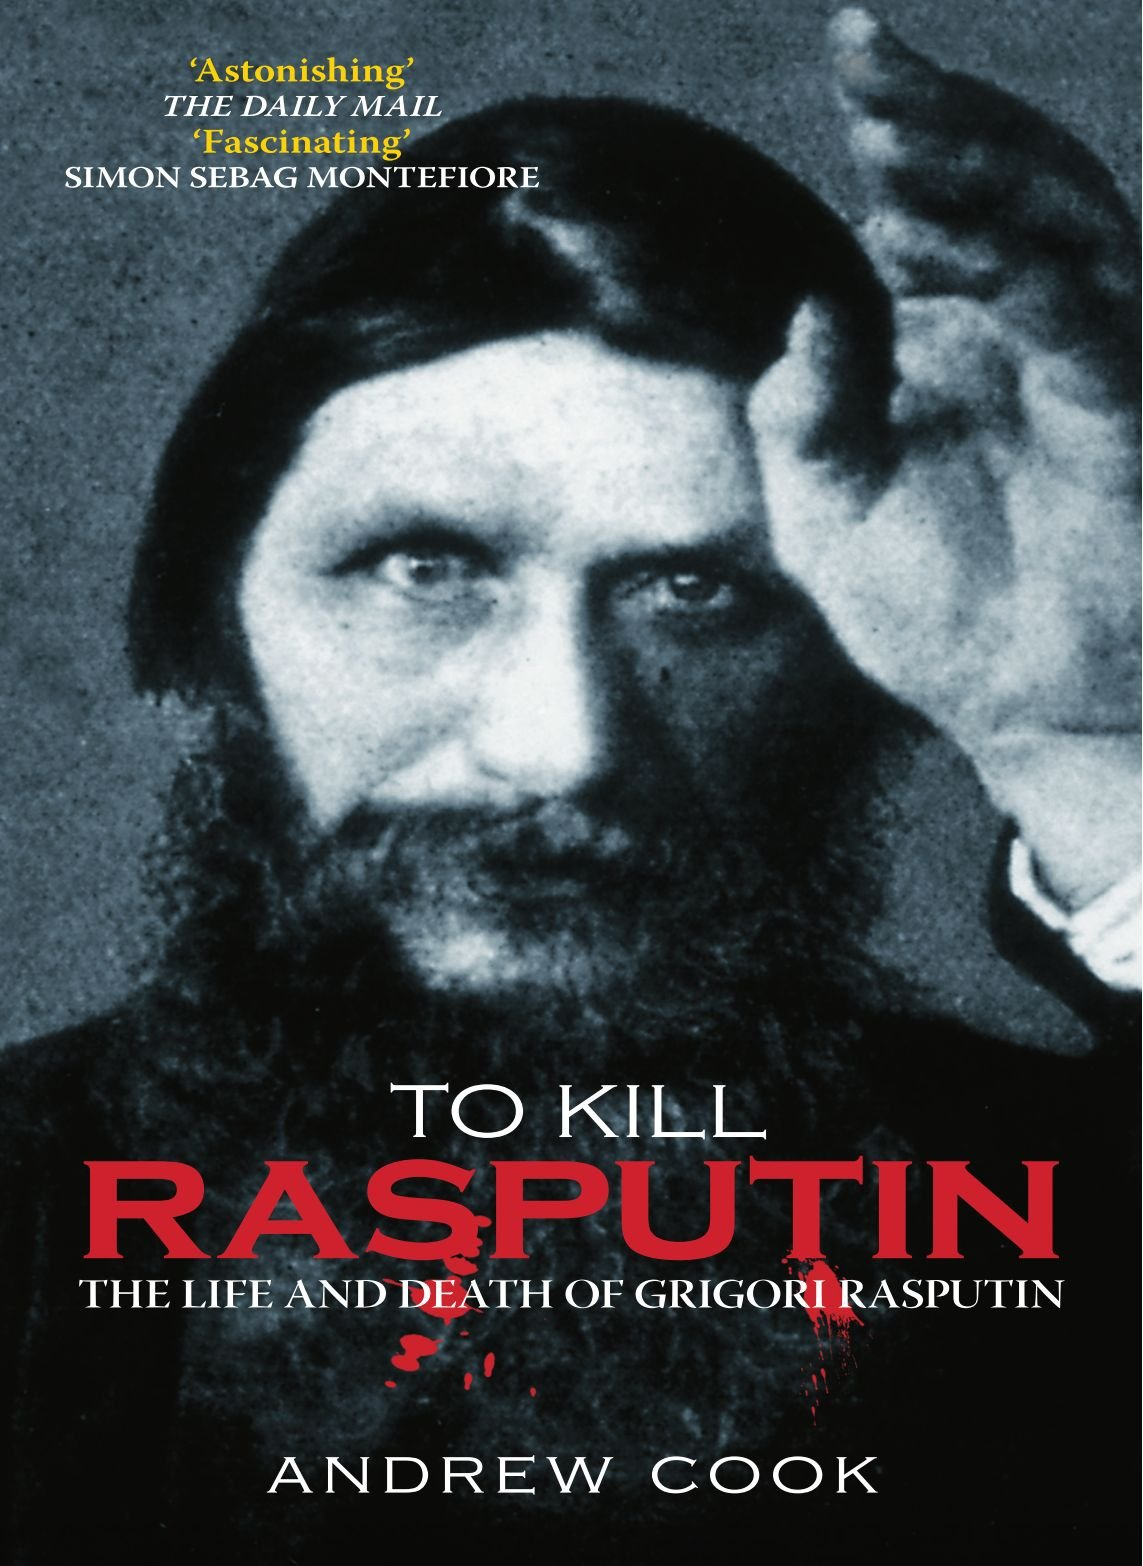 gregory efimovich rasputin essay Sometime over the course of the night and the early morning of december 29-30, 1916, grigory efimovich rasputin, a self-proclaimed holy man, is murdered by russian nobles eager to end his influence over the royal family rasputin, a siberian-born muzhik, or peasant, who underwent a religious conversion as a.